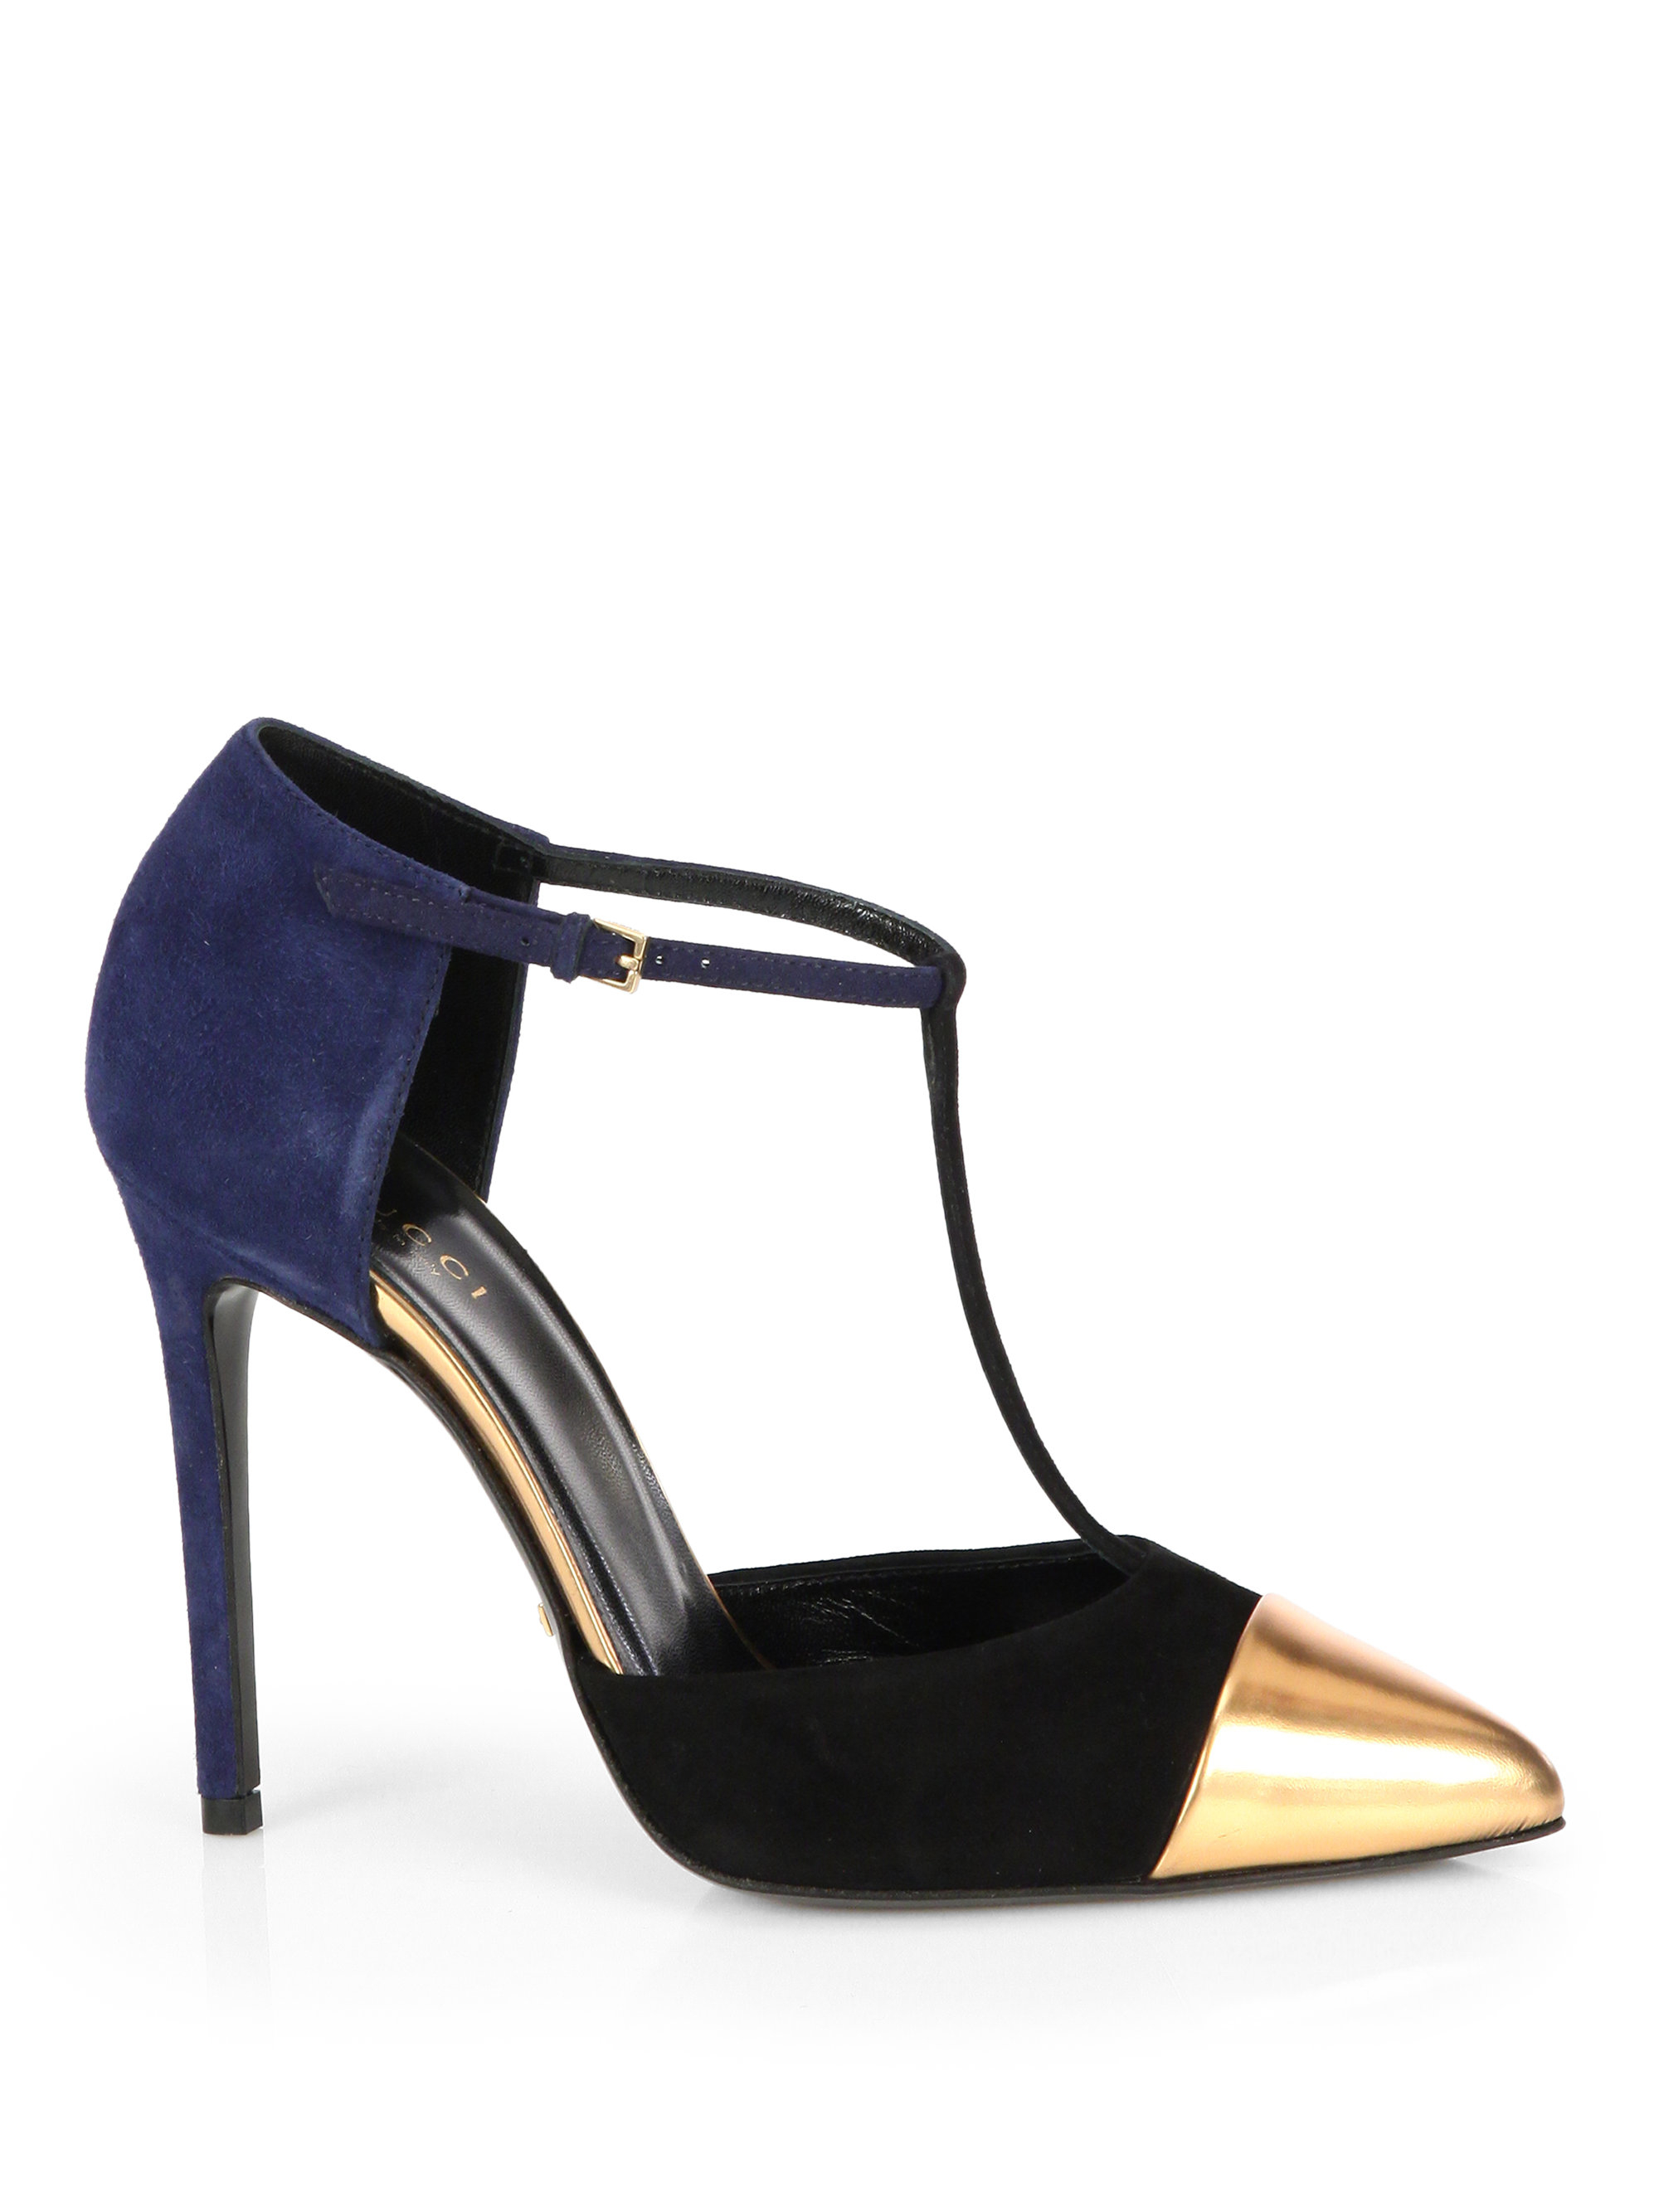 3c4873daaca43 Gucci Coline Suede & Leather T-Strap Pumps in Blue - Lyst